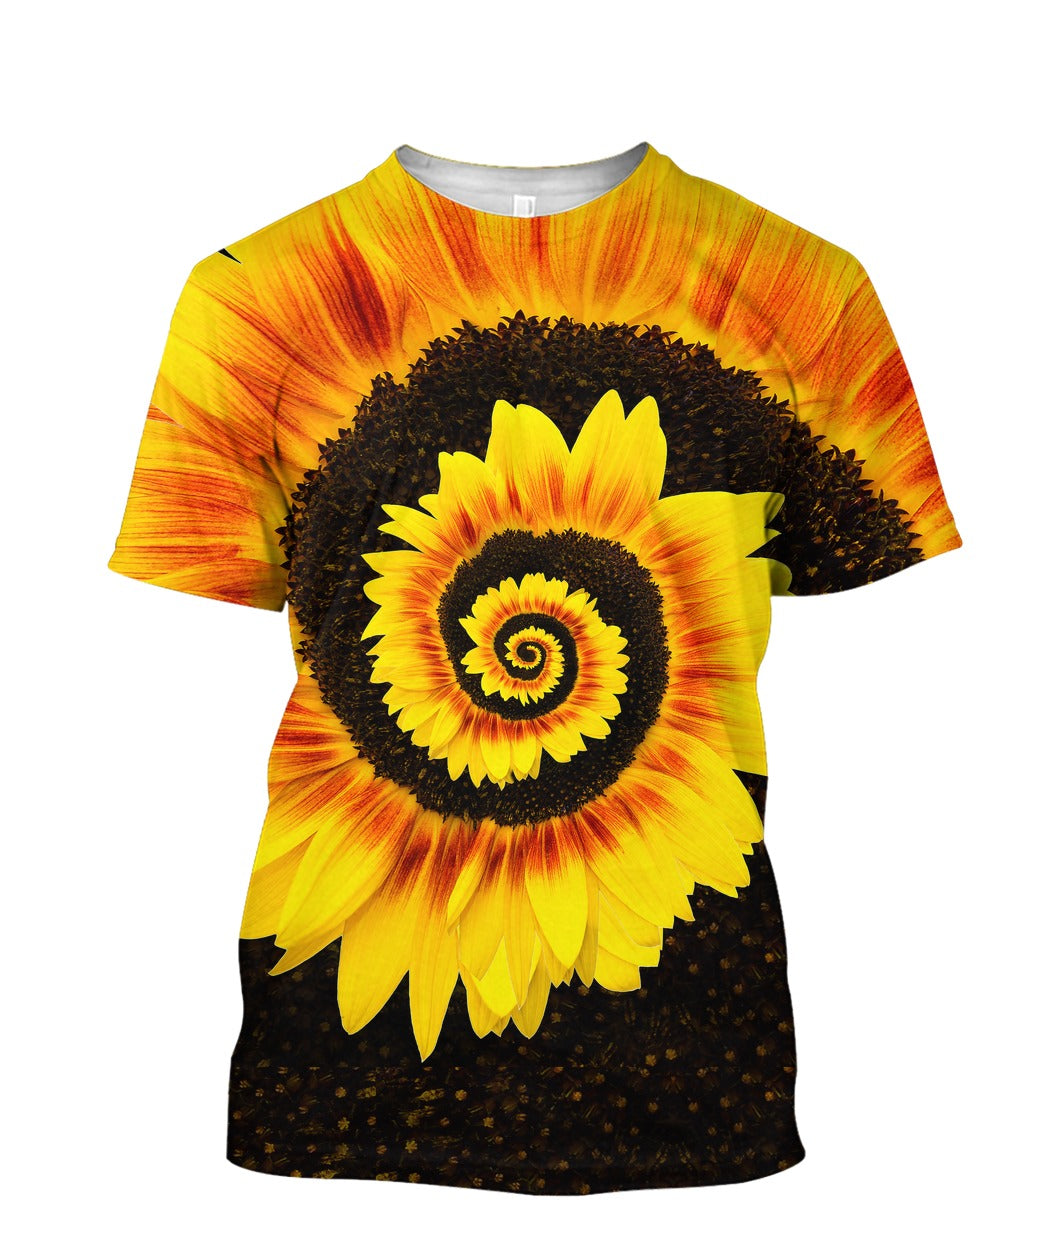 TWISTED TORNADO SUNGLOWER 3D FULL PRINTED T-SHIRT - Wonder Hippie Official